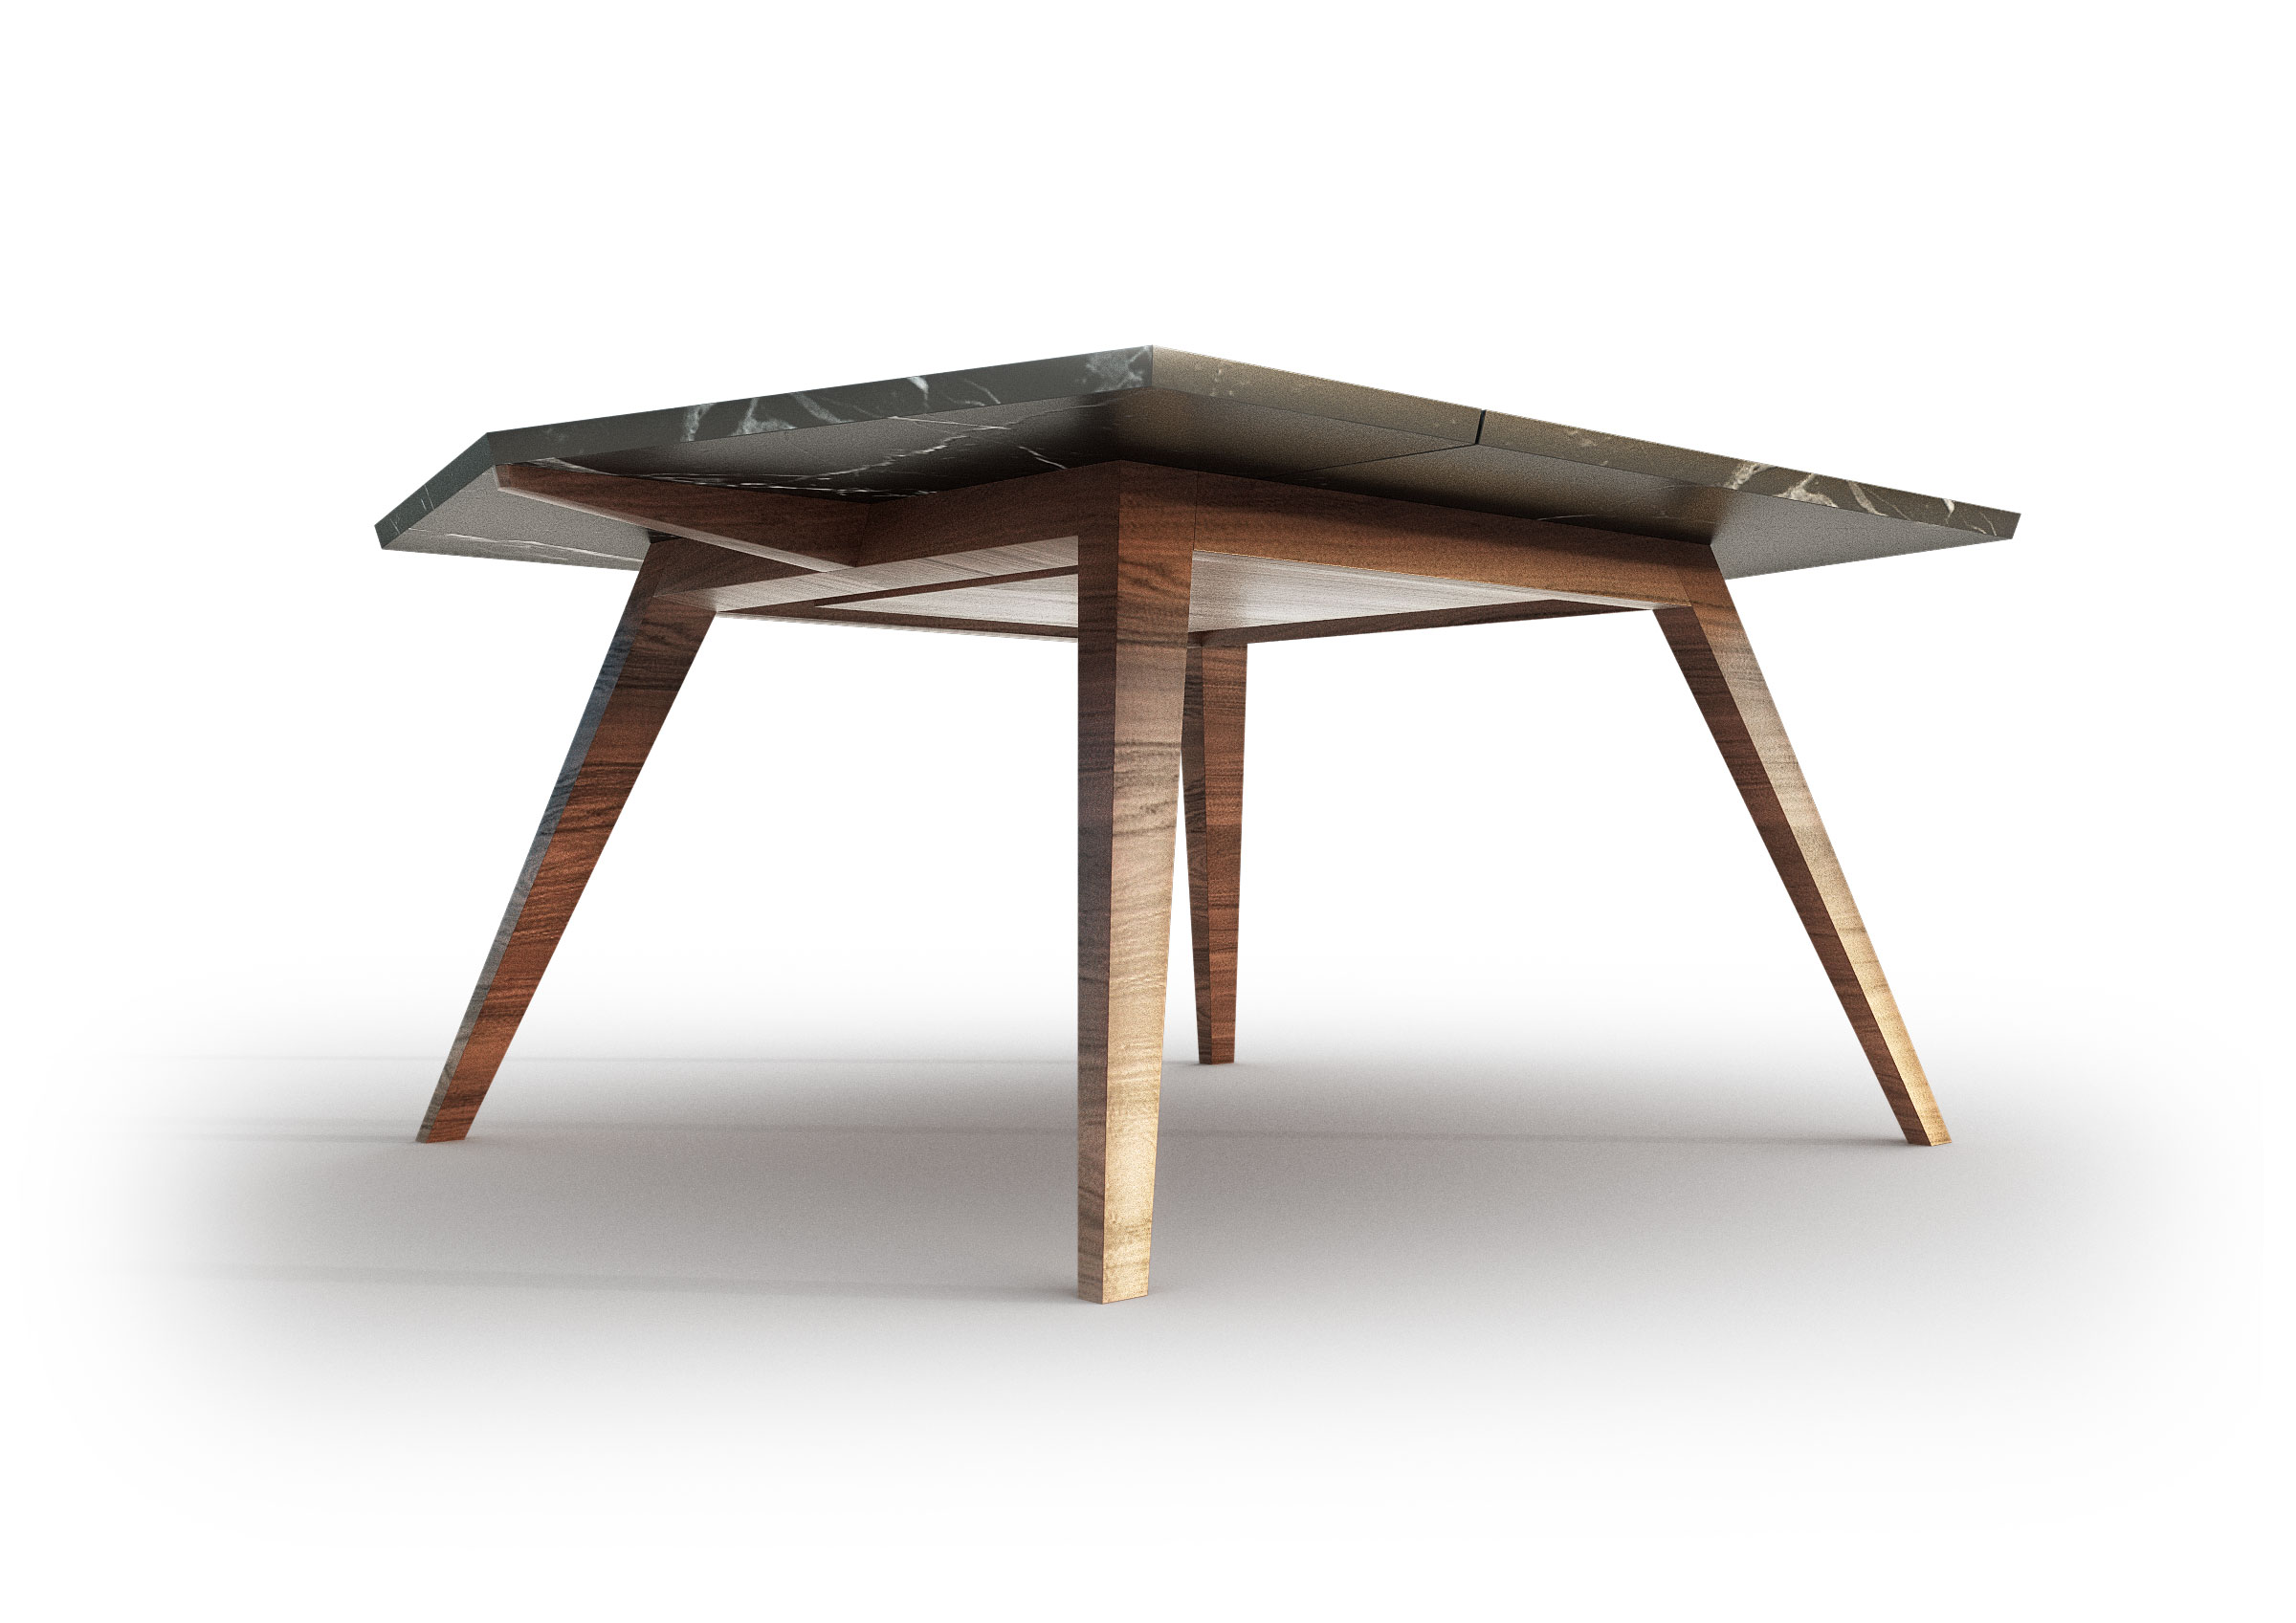 cy-architecture_granite&wood-table_vis-frontal-view